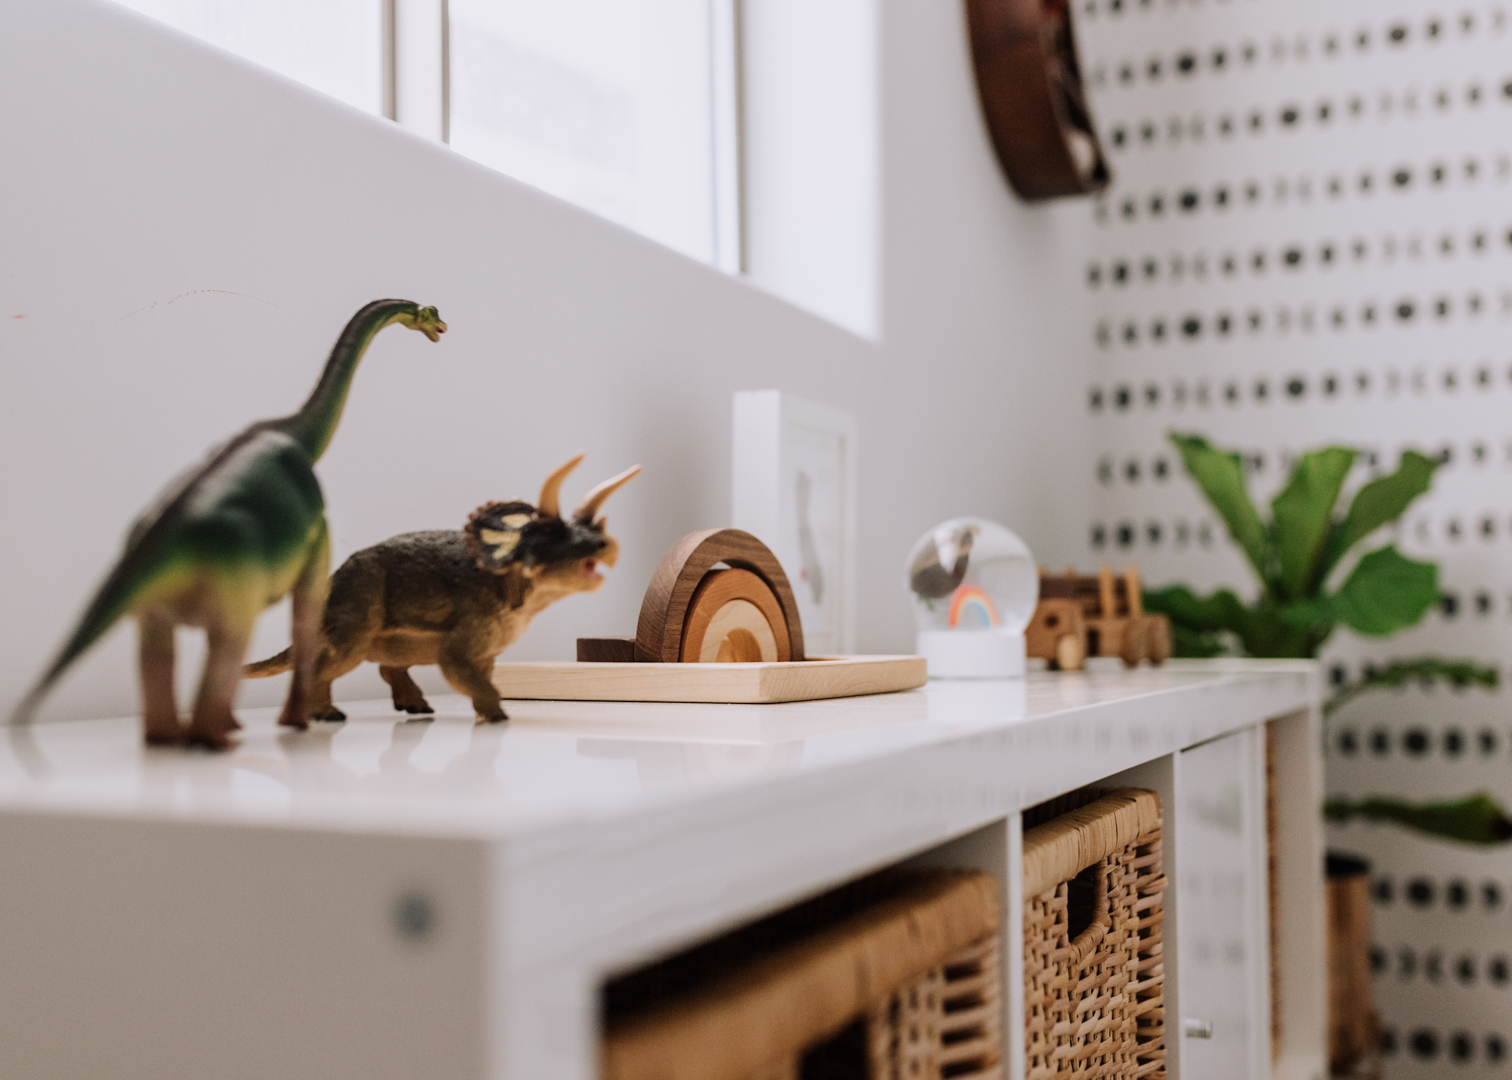 cutest little toys in boho modern playroom | thelovedesigendlife.com #playroom #kidsroom #dinosaurs